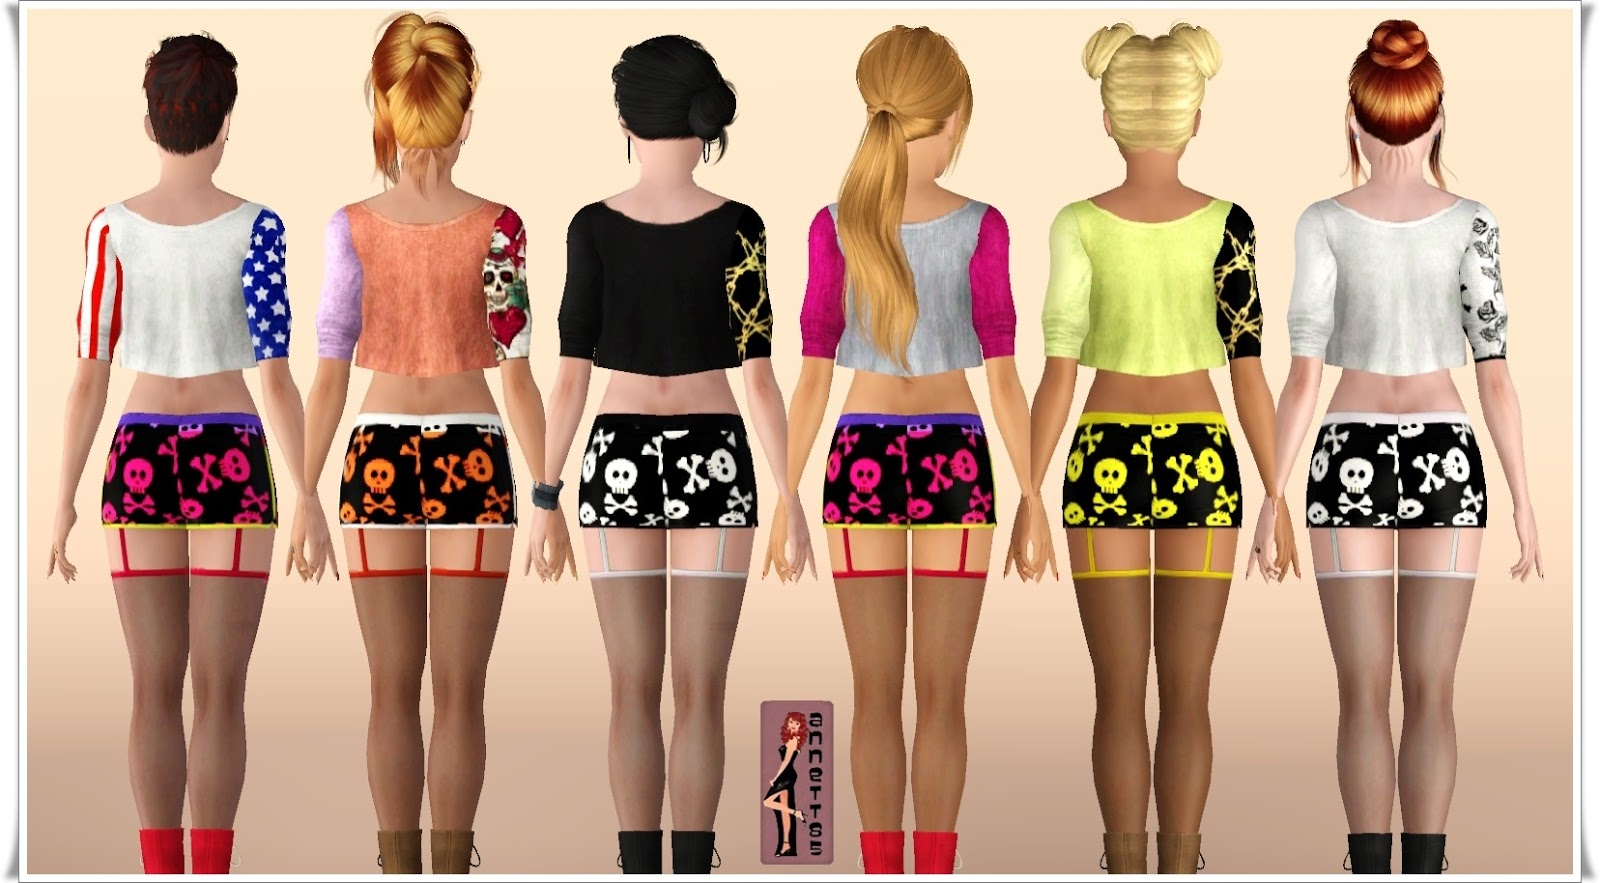 Fashion Sims3 clothes for your game - Lorandia Sims 3